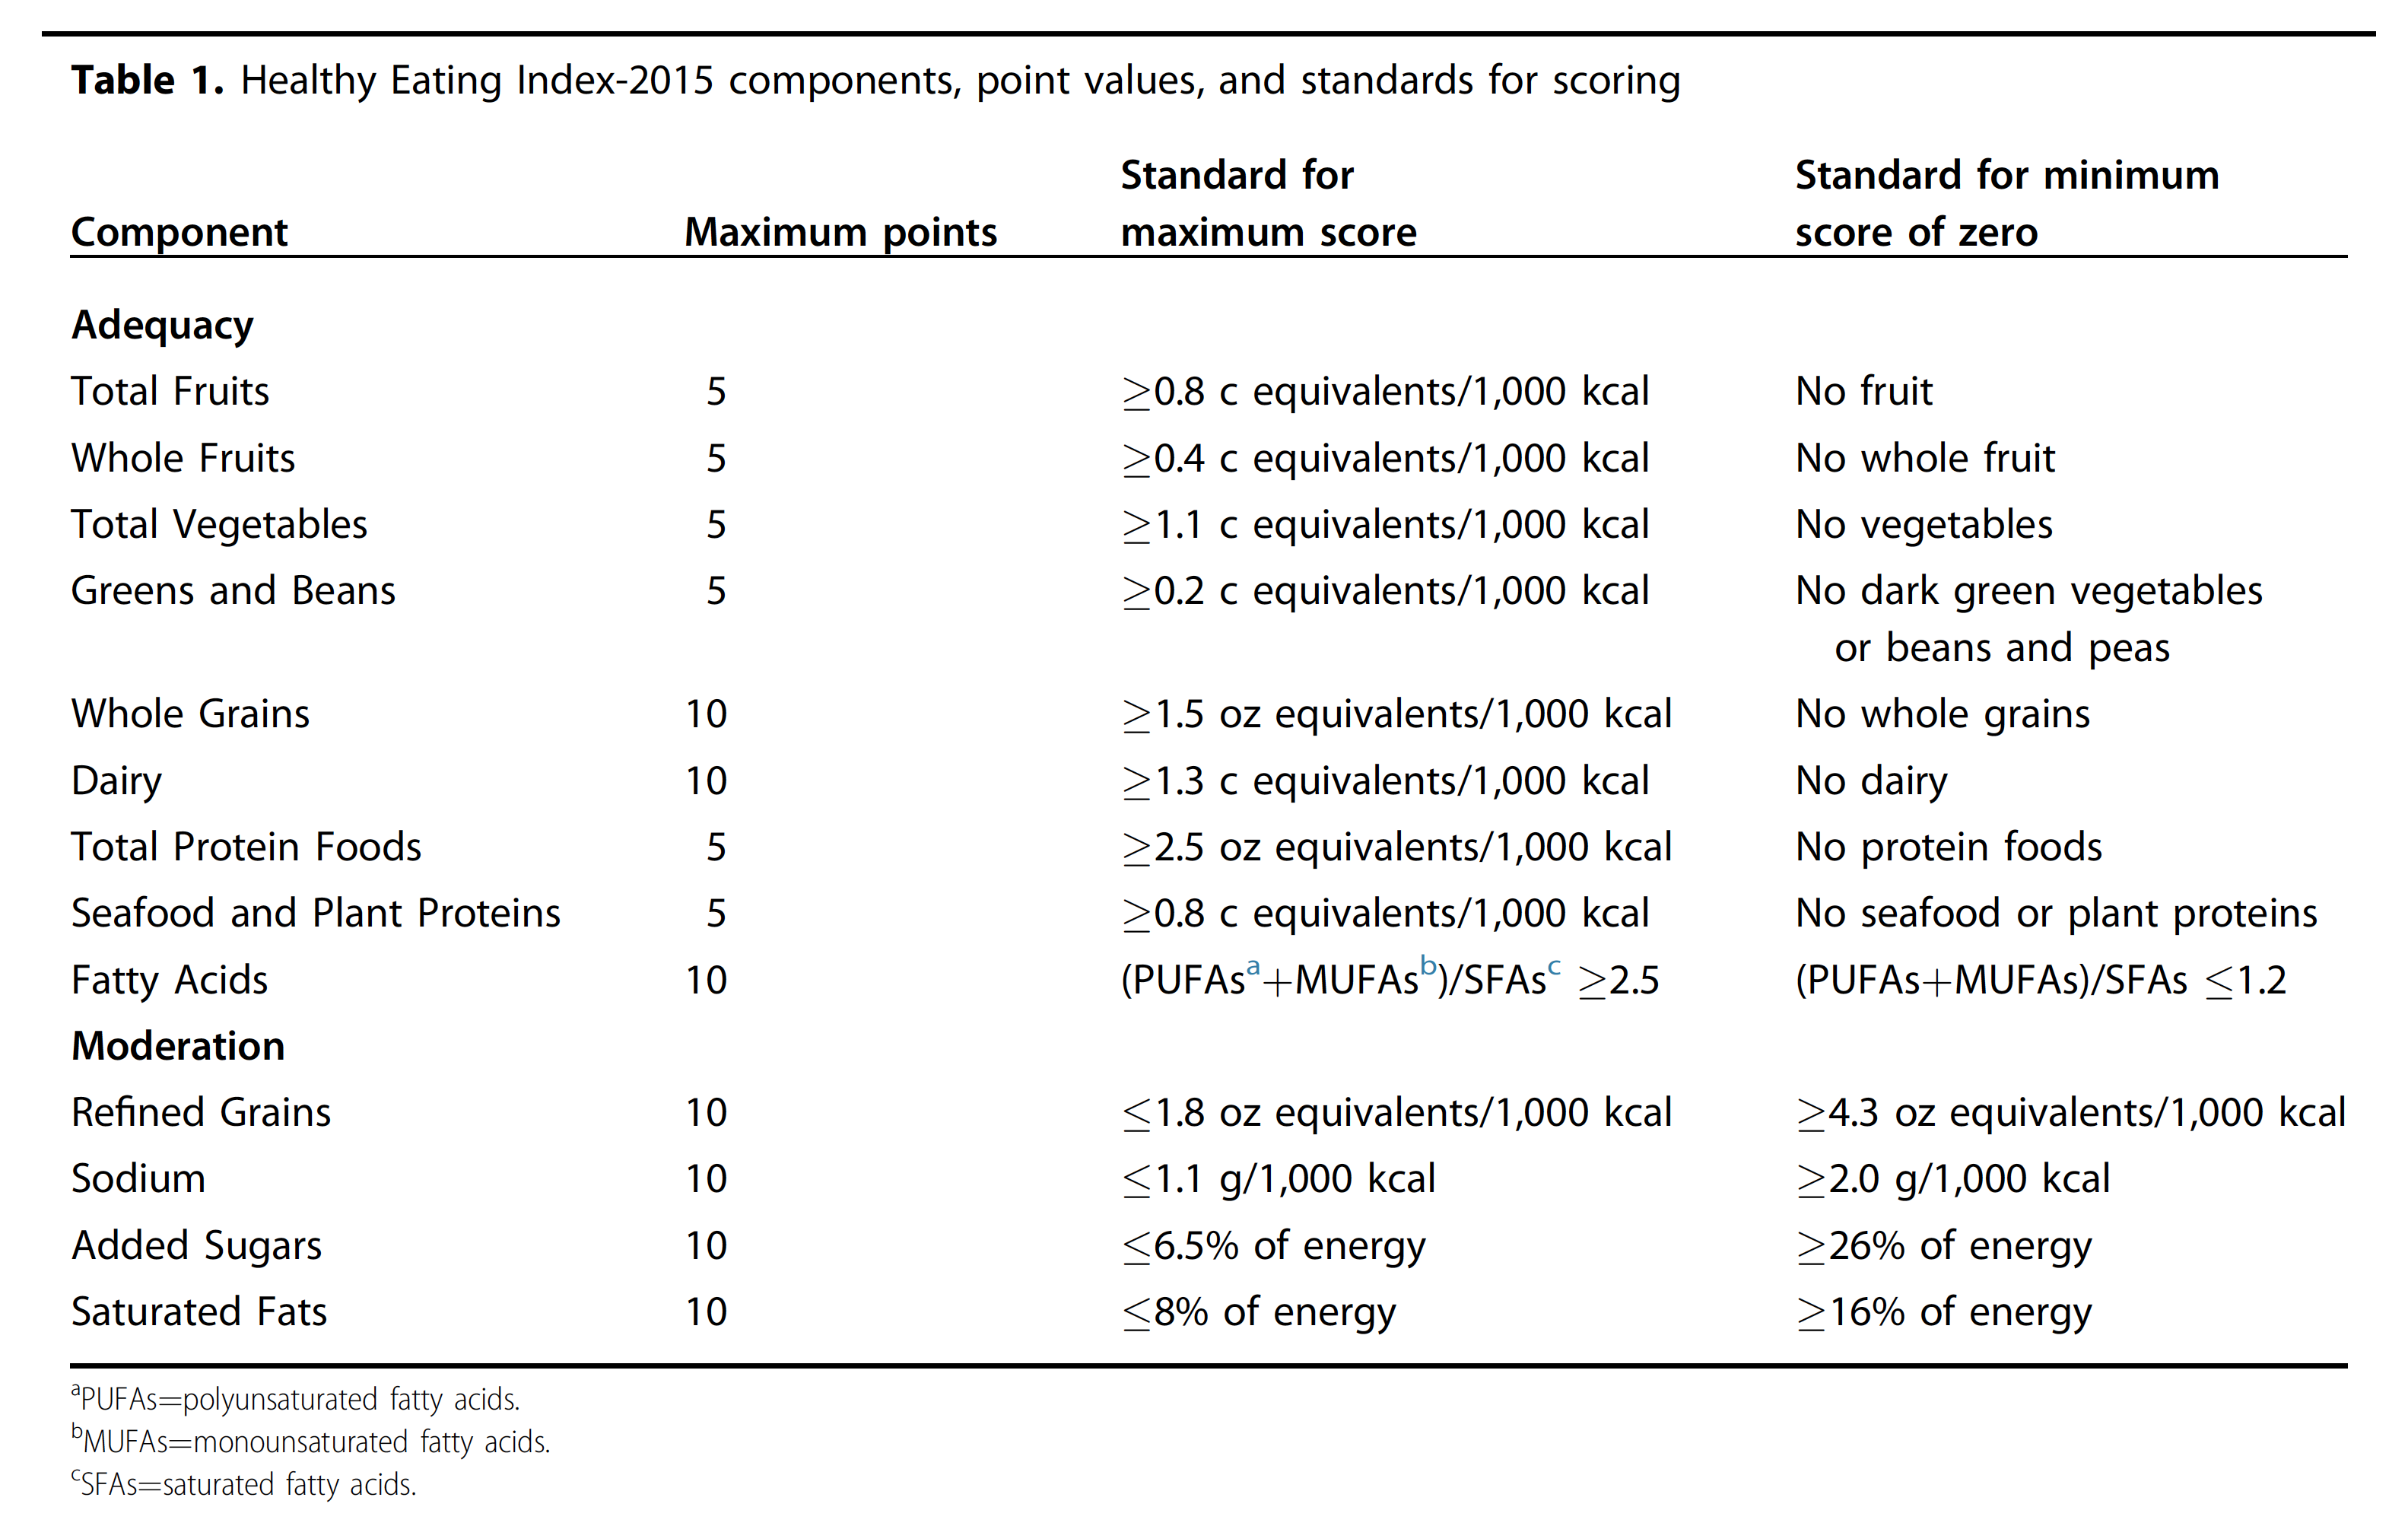 The Healthy Eating Index-2015 includes 9 adequacy components, including those allotted at 5 maximum points: Total Fruits, Whole Fruits, Total Vegetables, Greens and Beans, Total Protein Foods, and Seafood and Plant Proteins. And those allotted 10 points: Whole Grains, Dairy, and Fatty acids. The index also includes four moderation components all allotted 10 points maximum, including: Refined Grains, Sodium, Added Sugars, and Saturated fat.